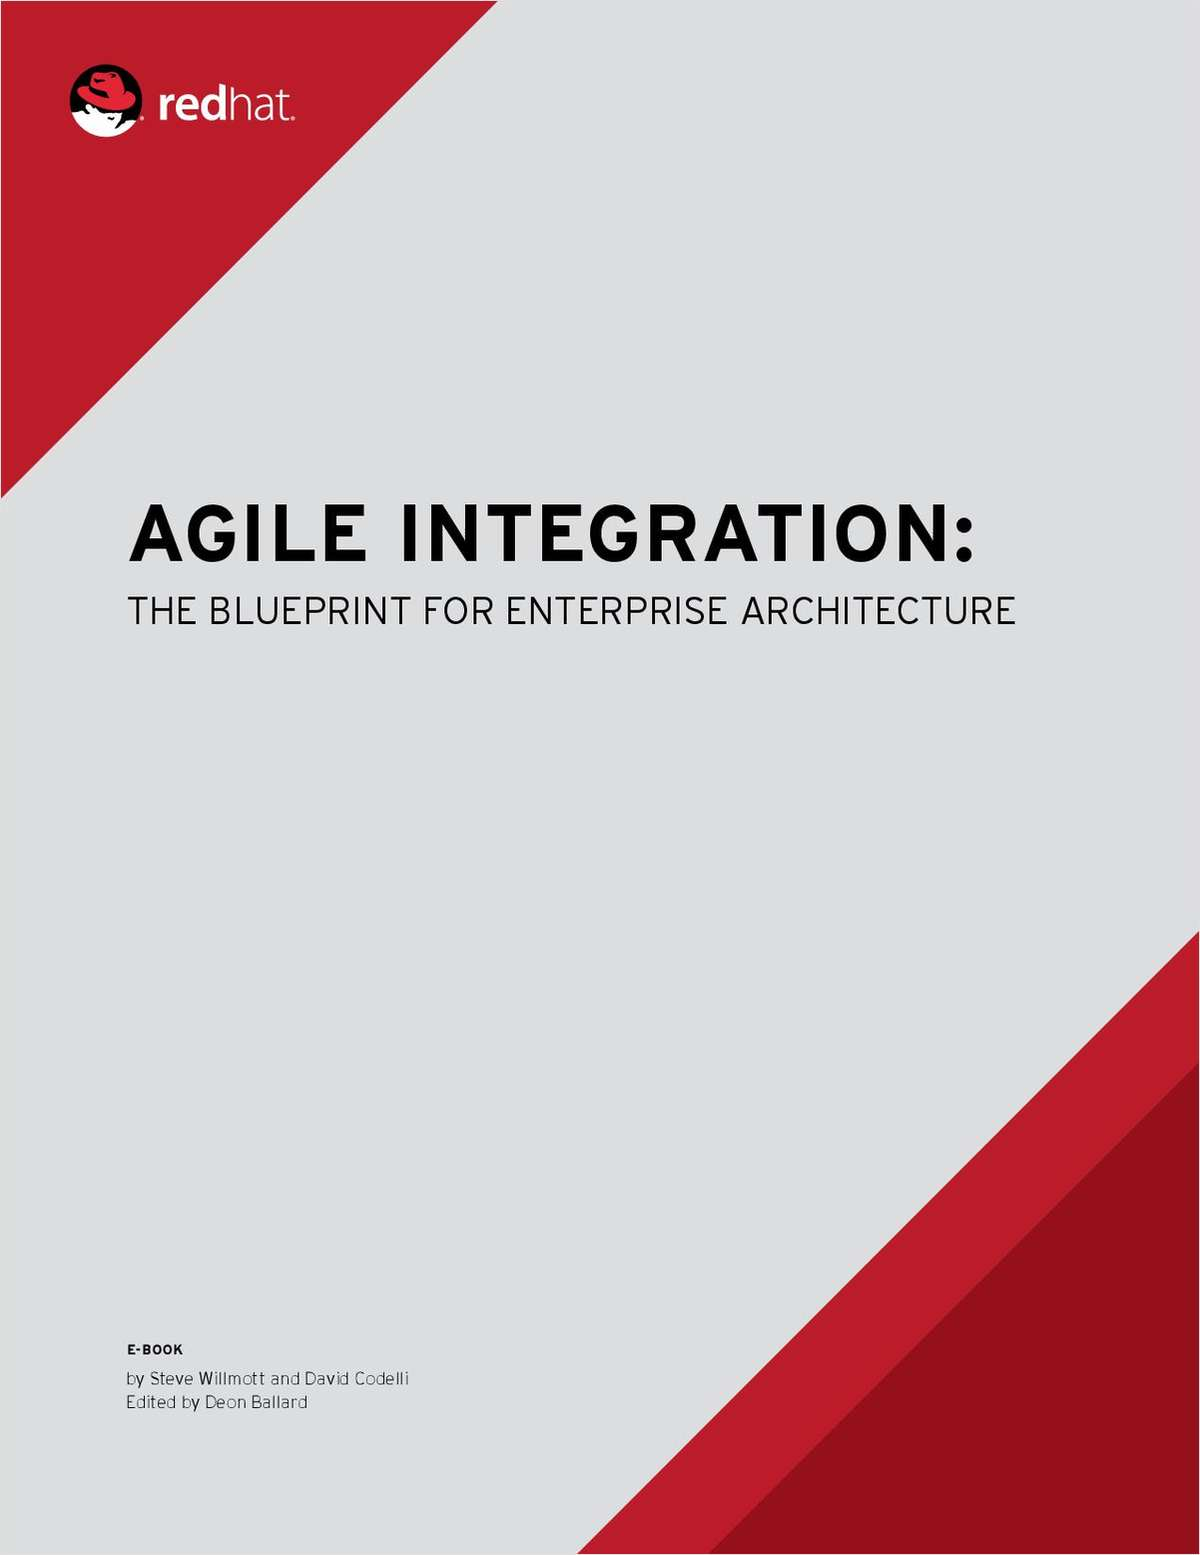 Agile integration: A blueprint for enterprise architecture